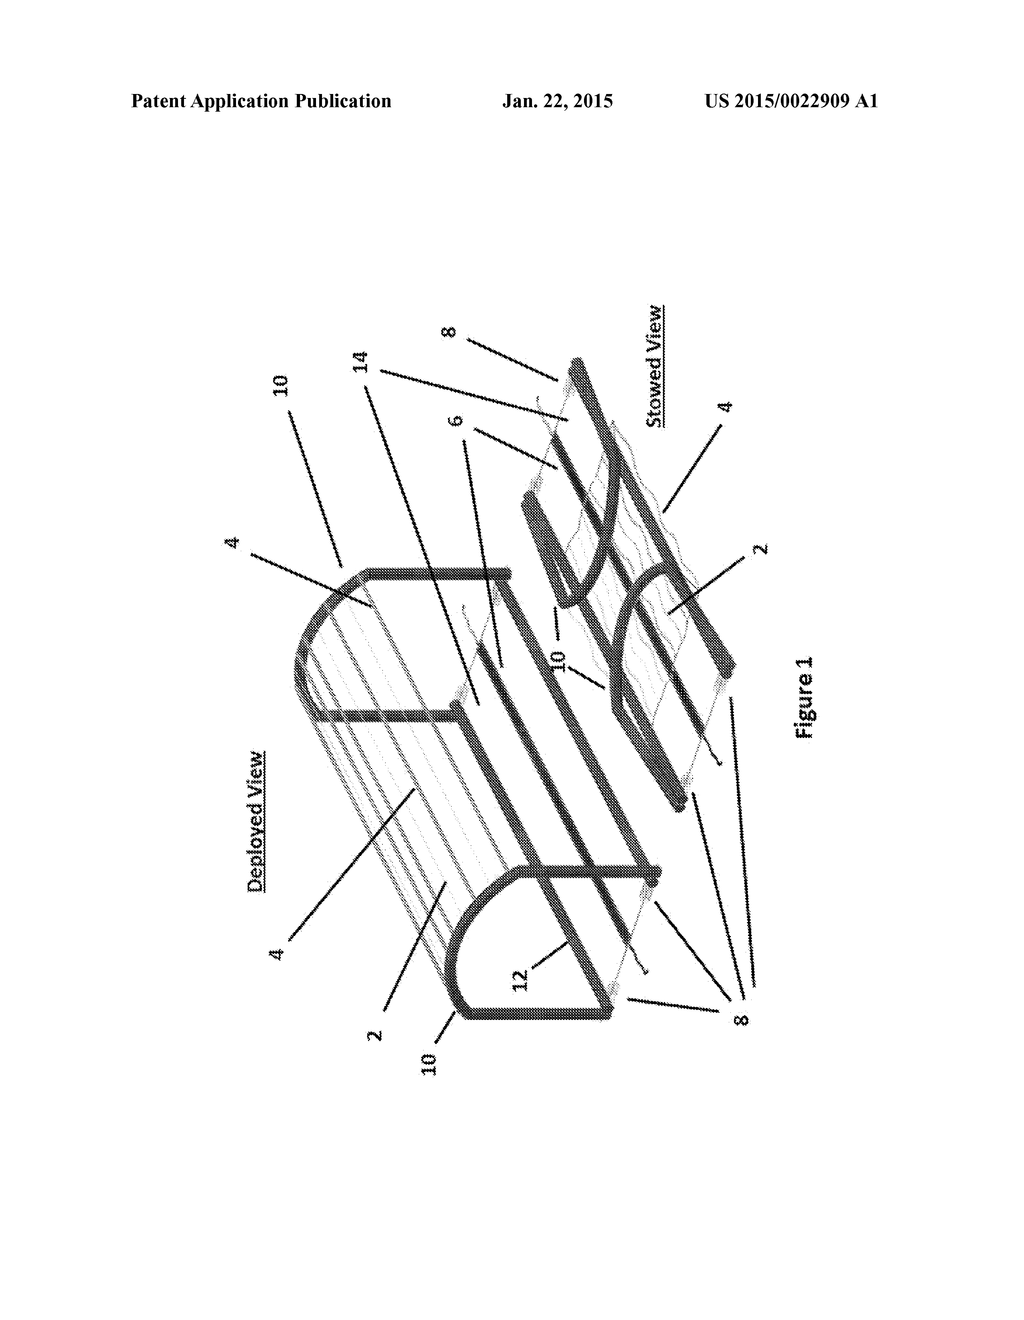 Stretched fresnel lens solar concentrator for space power with stretched fresnel lens solar concentrator for space power with cords fibers or wires strengthening the stretched lens diagram schematic and image 02 pooptronica Gallery